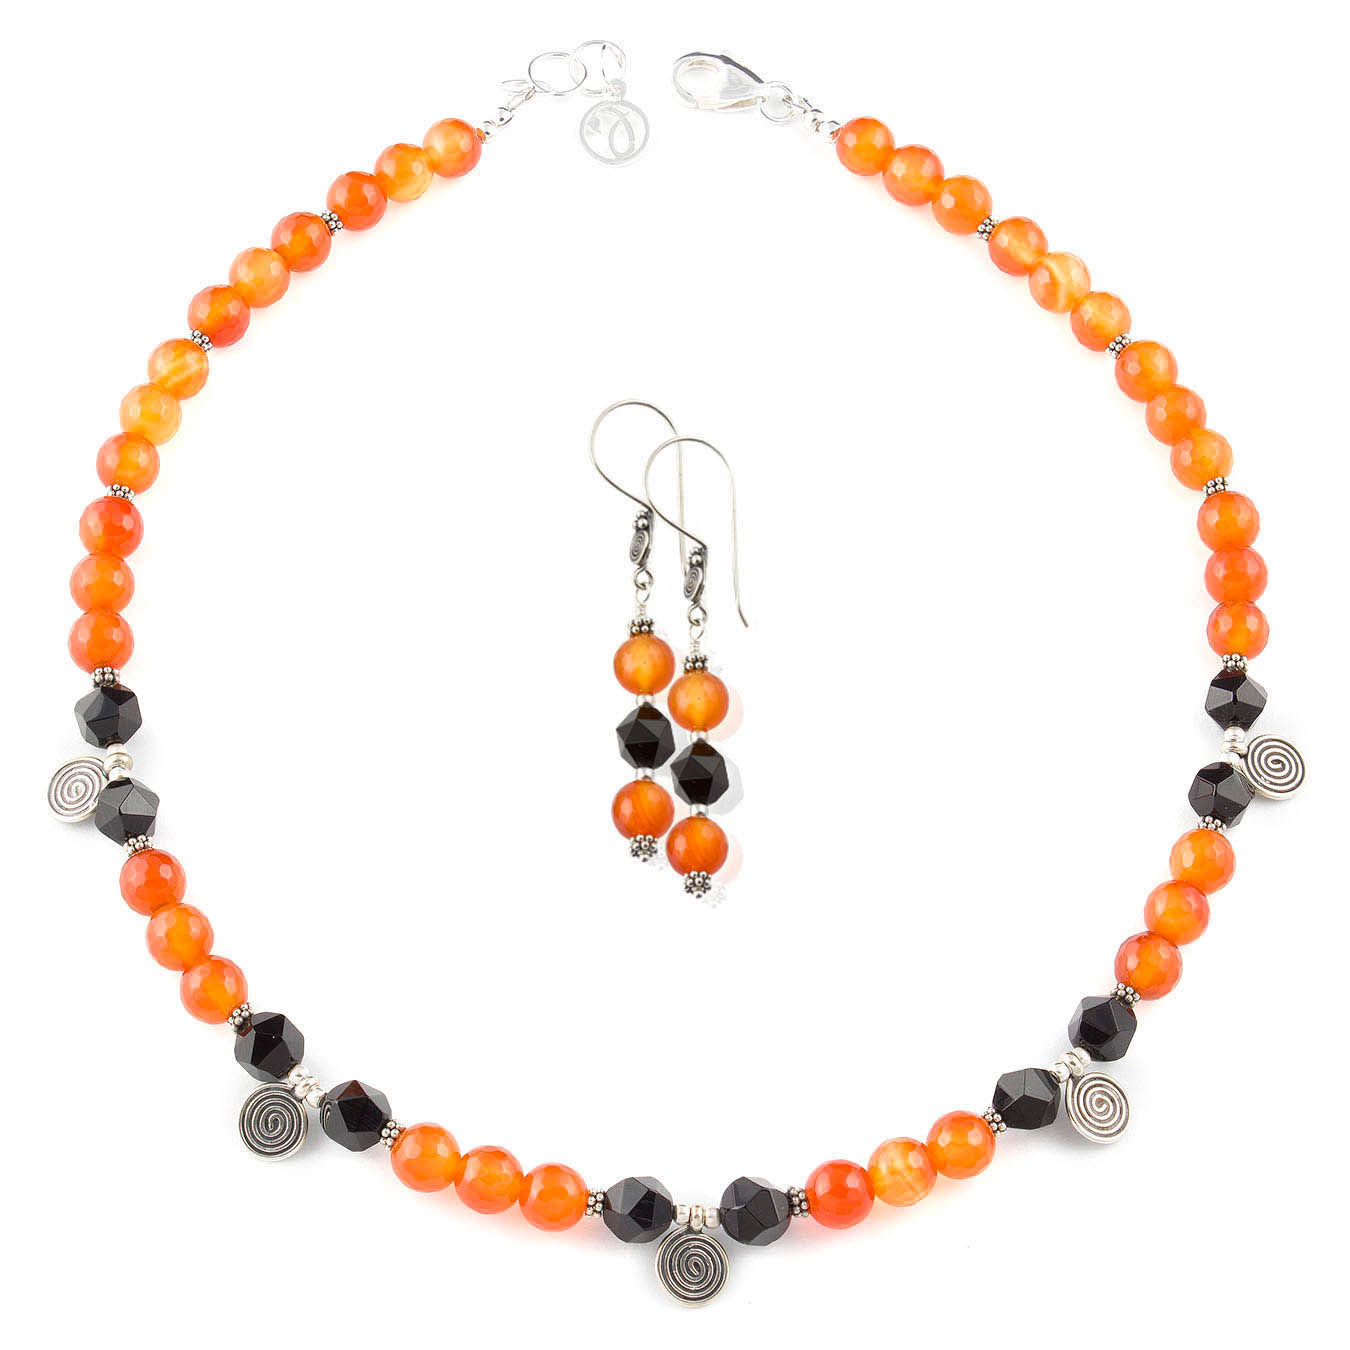 Bali charm necklace set made of faceted black and red agate gemstones